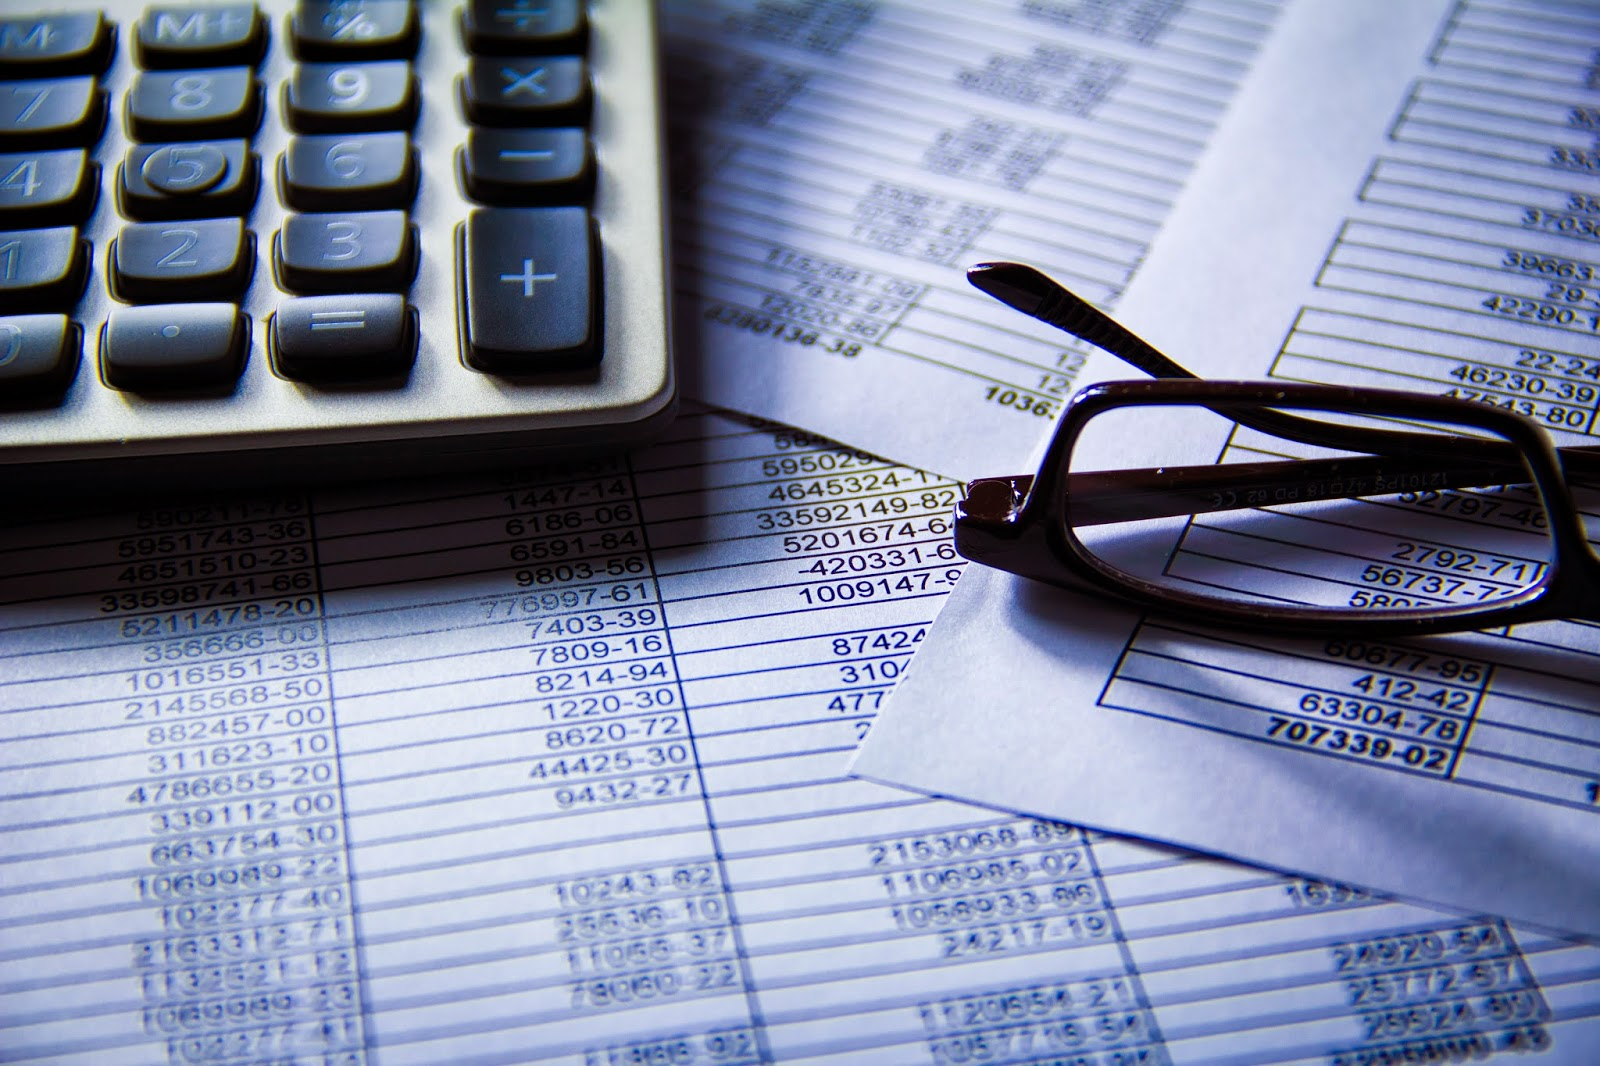 Temporary CFOs are able to evaluate corporate financial objectives and processes